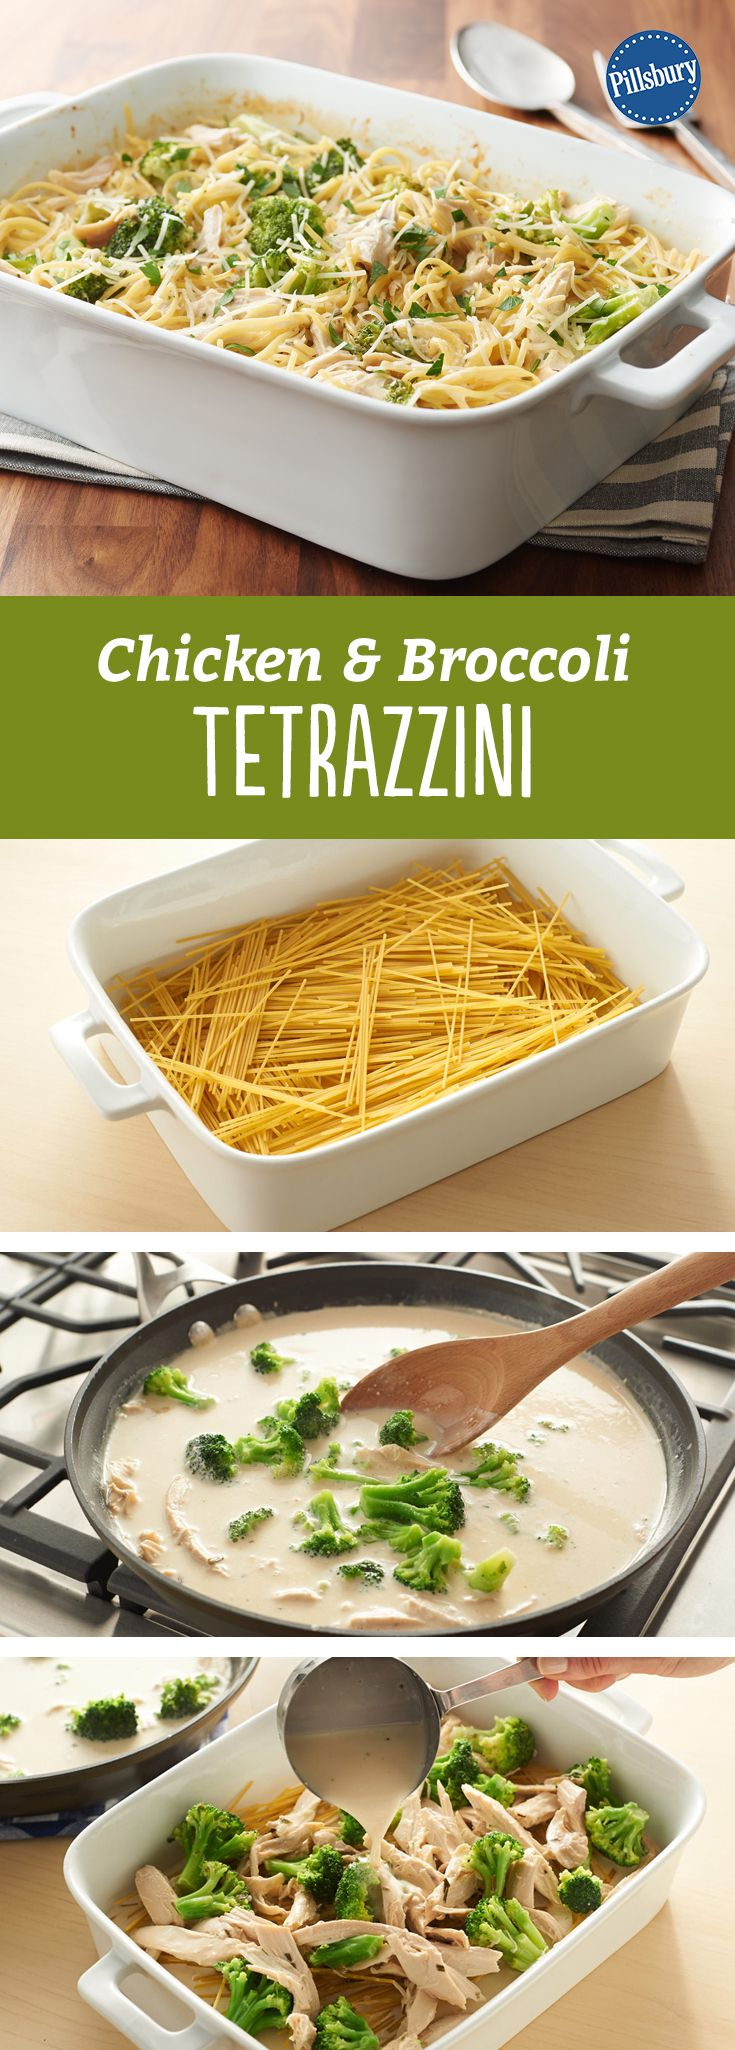 Chicken and Broccoli Tetrazzini: Enjoy this hearty 5-ingredient chicken, broccoli and spaghetti bake. Sure to become a family favorite.